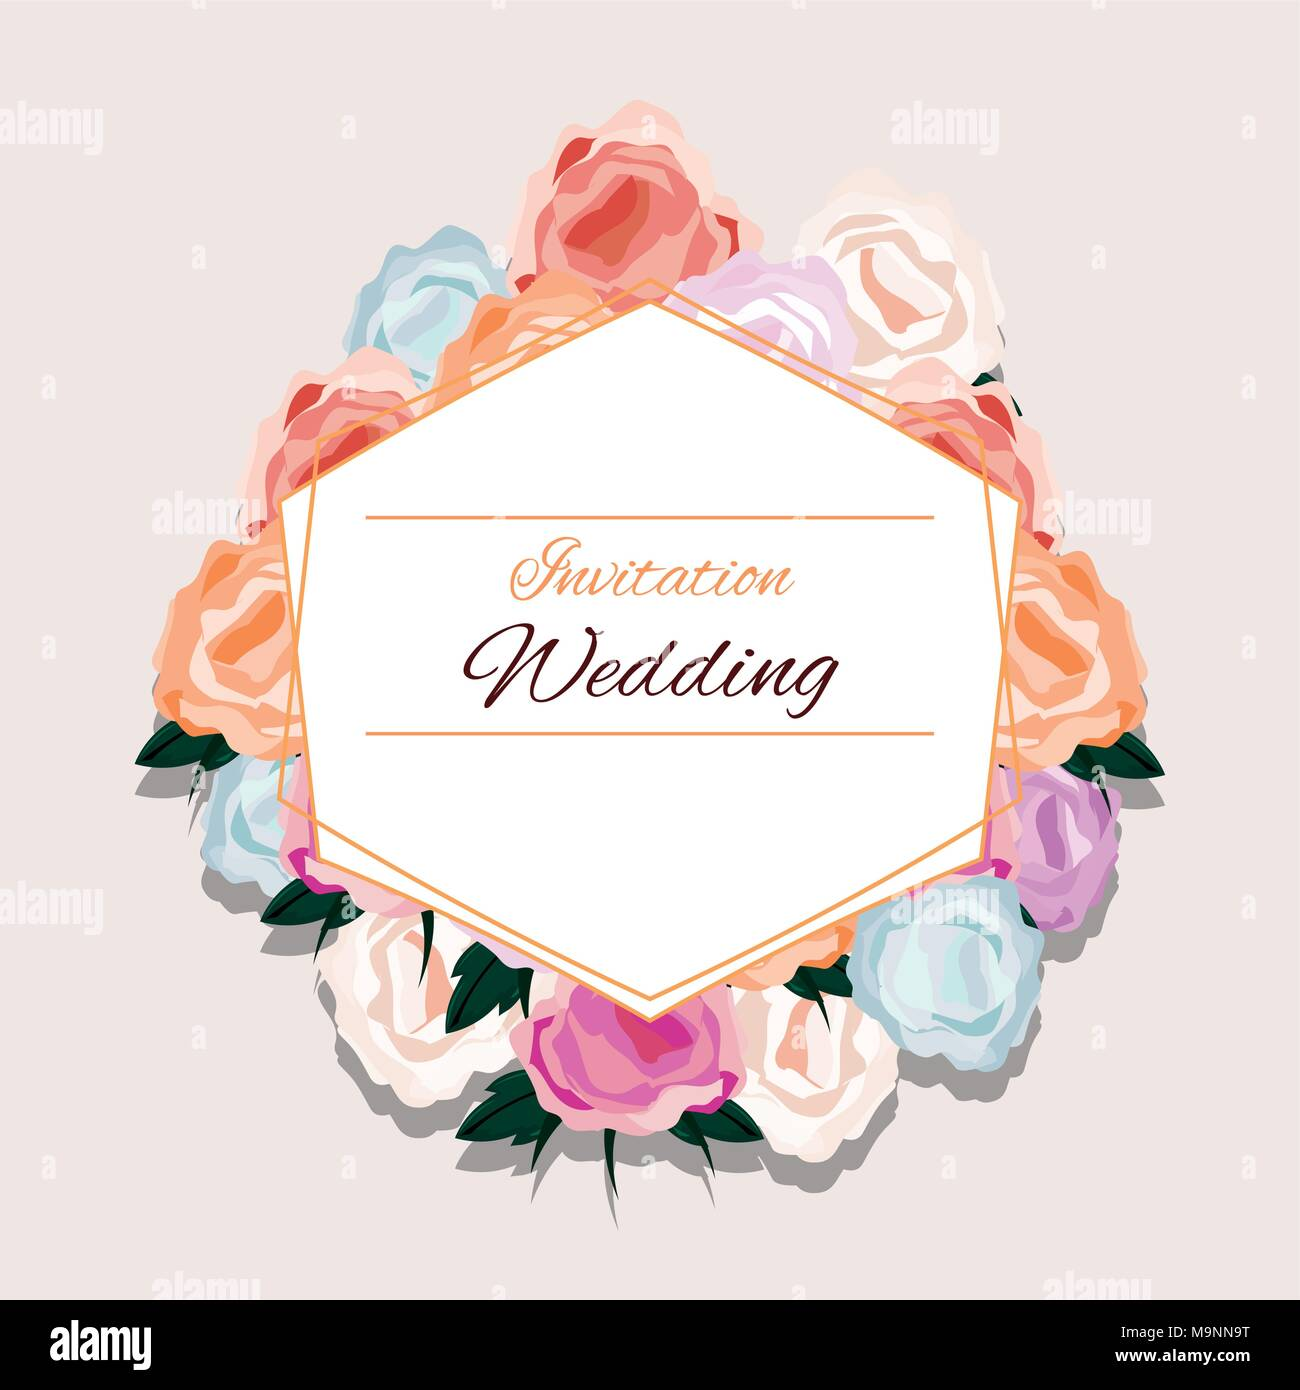 floral wedding invitation design with beautiful flowers and ...